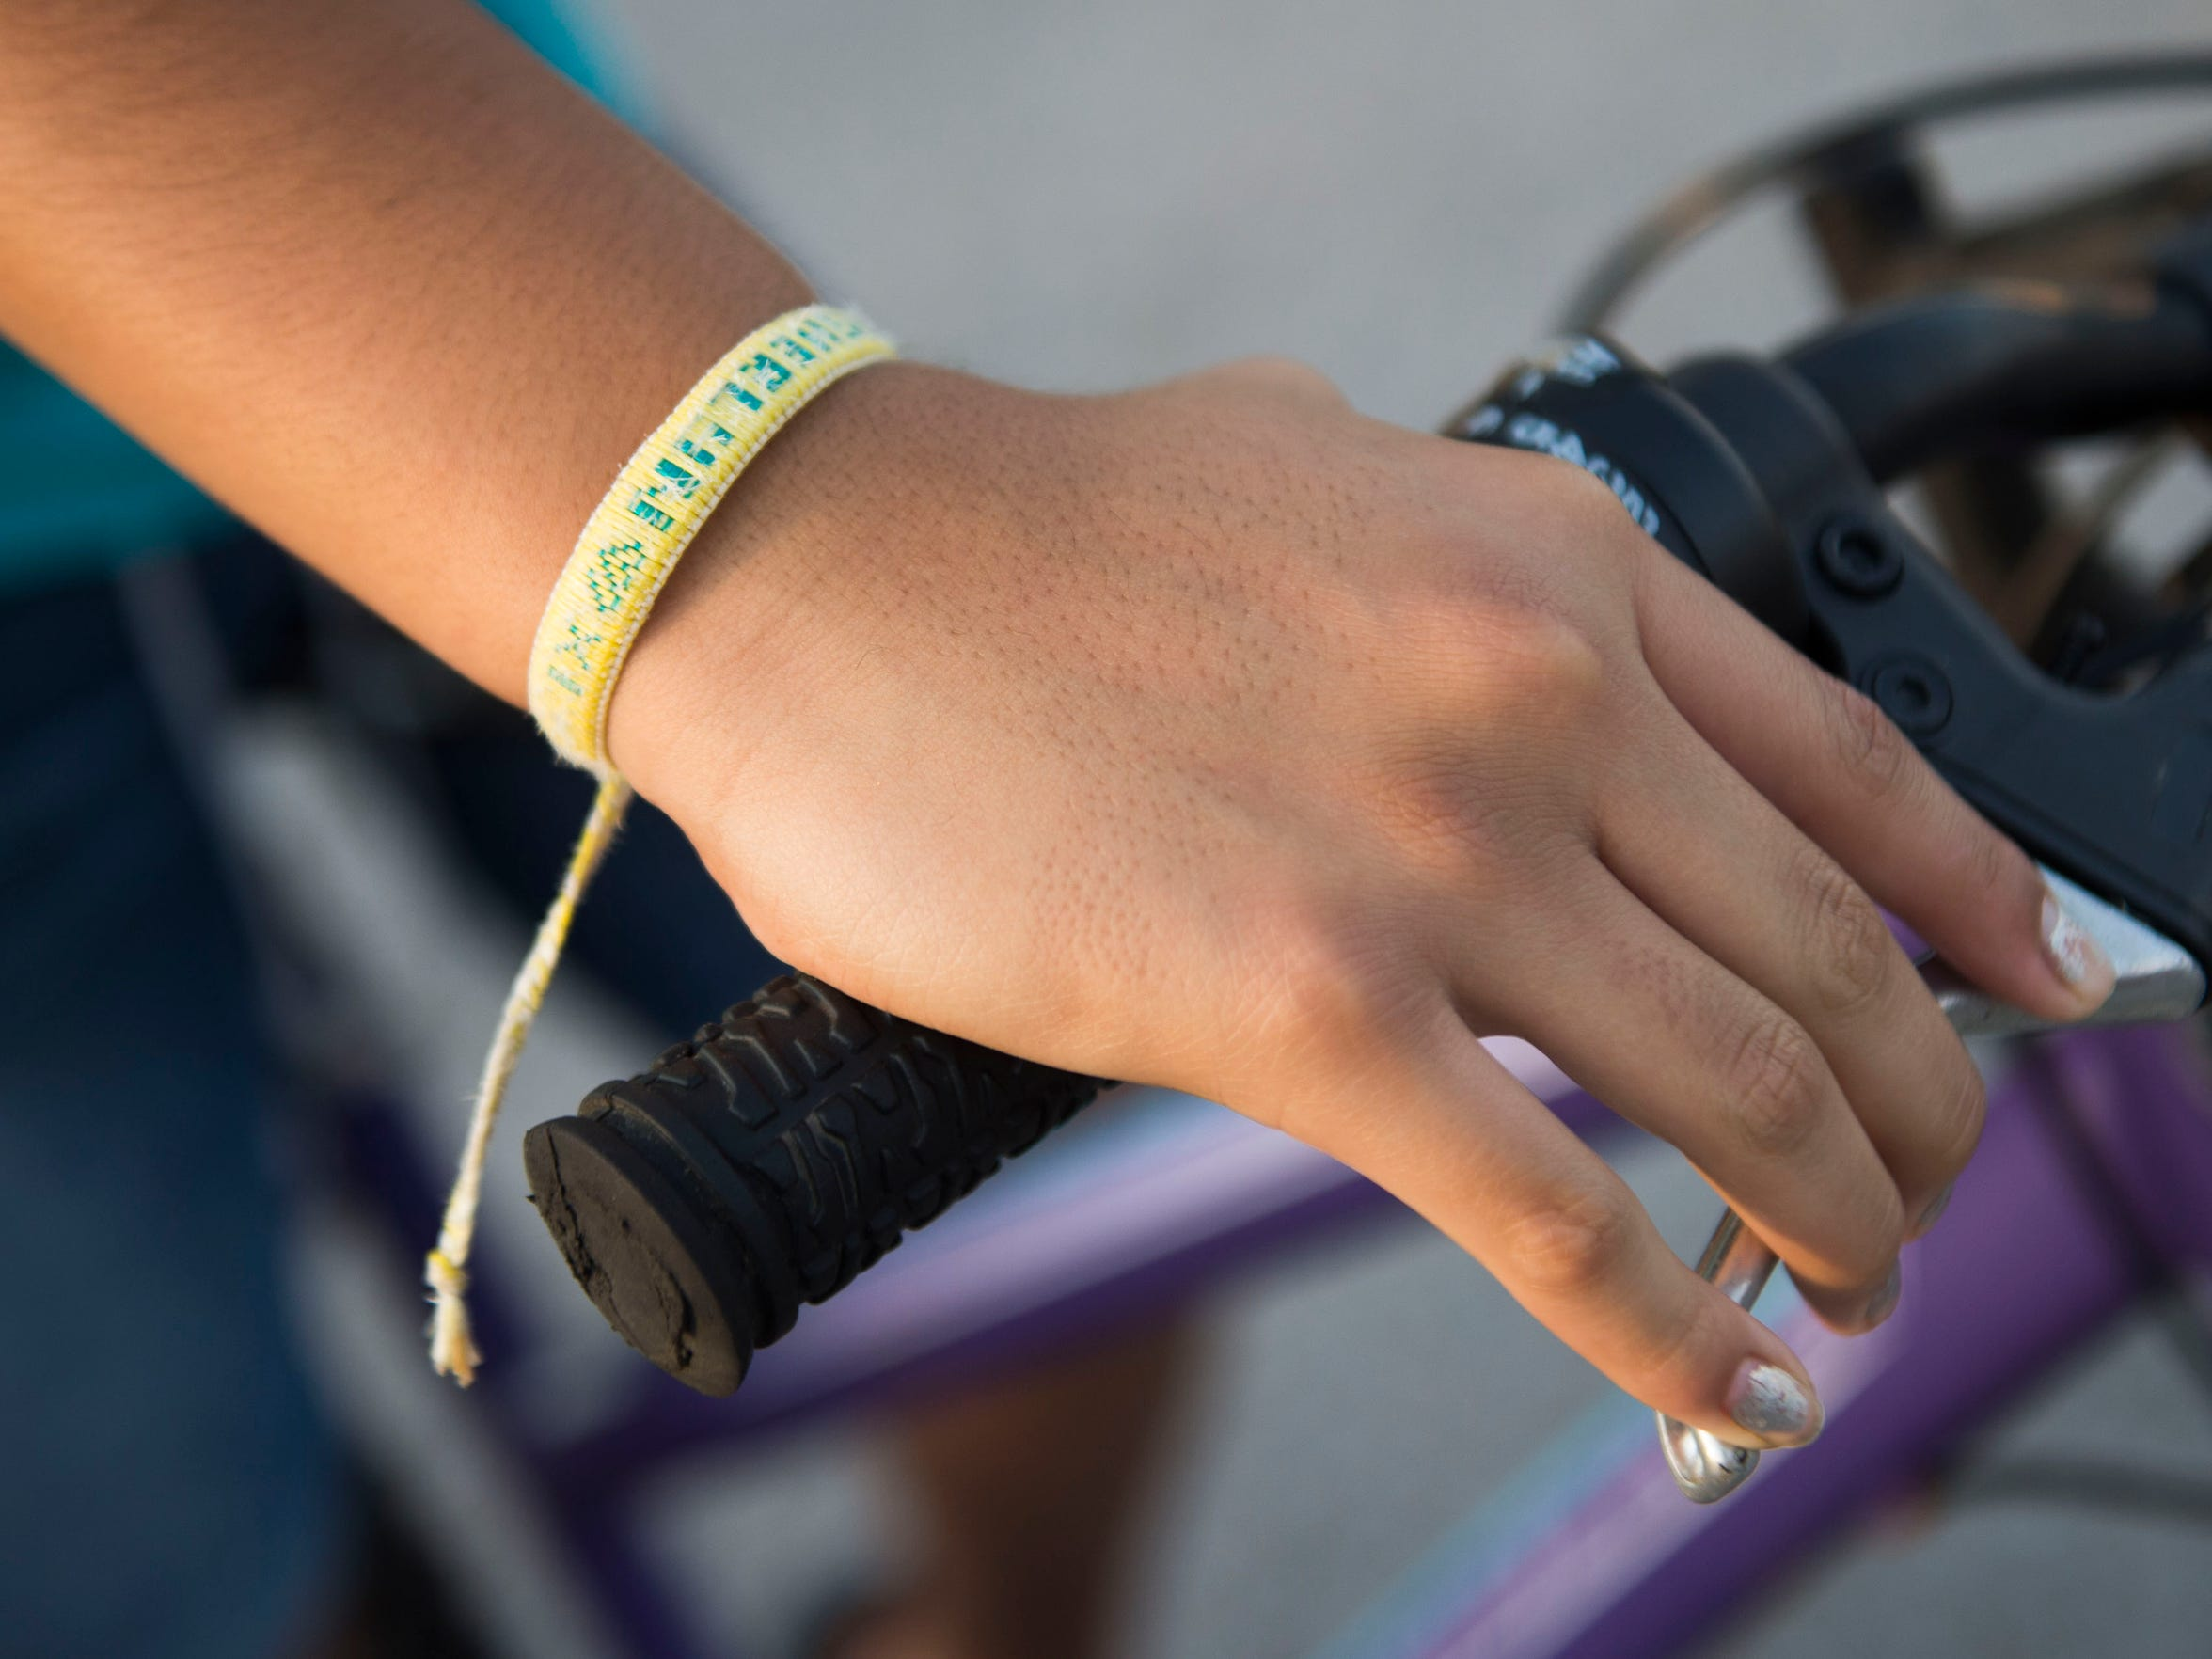 Sheryln Librado, 11, wears a bracelet her father made for her while he was detained in White Pine, Tenn. July 3, 2018. Her father Alberto was detained by U.S. Immigration and Customs Enforcement agents when they raided the Southeastern Provision meat-packing plant where he worked outside Bean Station in April.